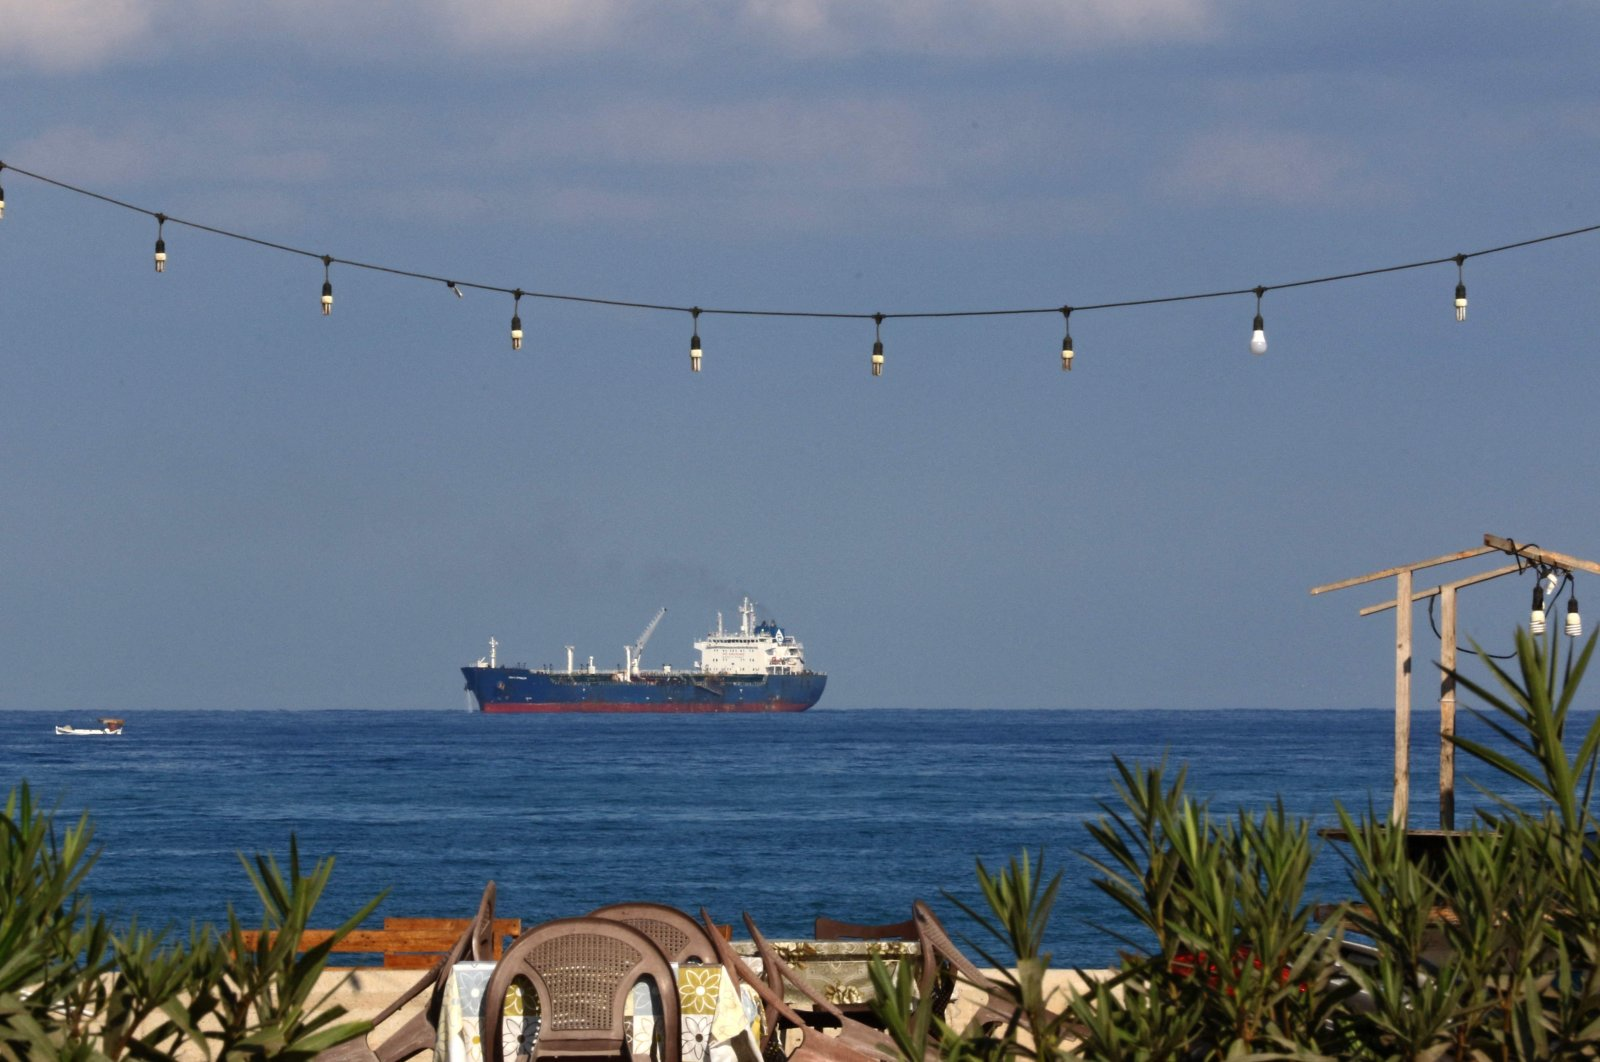 An oil tanker carrying fuel oil from Iraq, is seen anchored near the Zahrani power plant in Zahrani near the southern Lebanese city of Saida, Sept. 18, 2021. (AFP Photo)